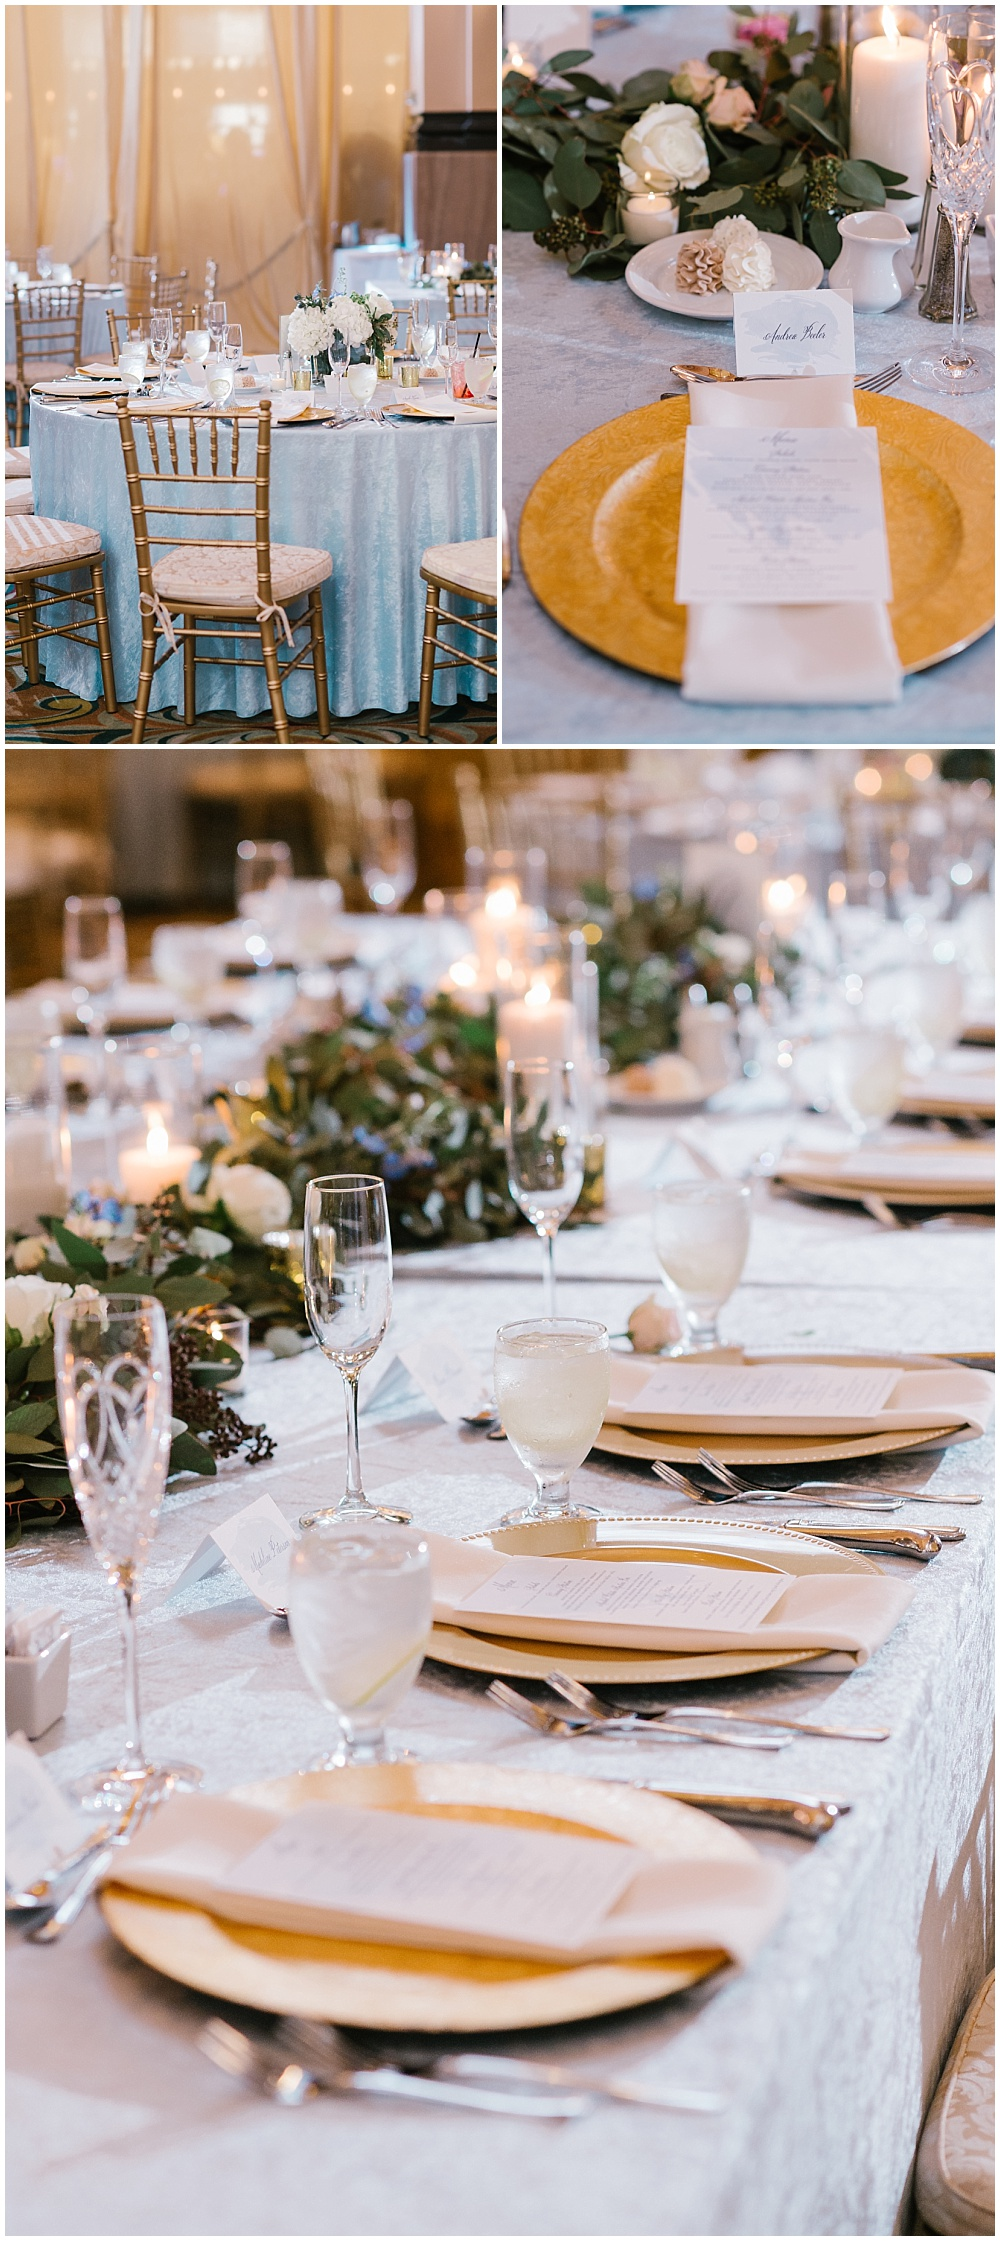 Custom blue velvet linens were created specifically for Scott + Andrea's wedding tablescapes adorned with gold accents and draped greenery down the lengths of the tables | A blue and gold downtown Indianapolis spring wedding at the Grand Hall at Historic Union Station with Rebecca Shehorn Photography and Jessica Dum Wedding Coordination is on the blog today!